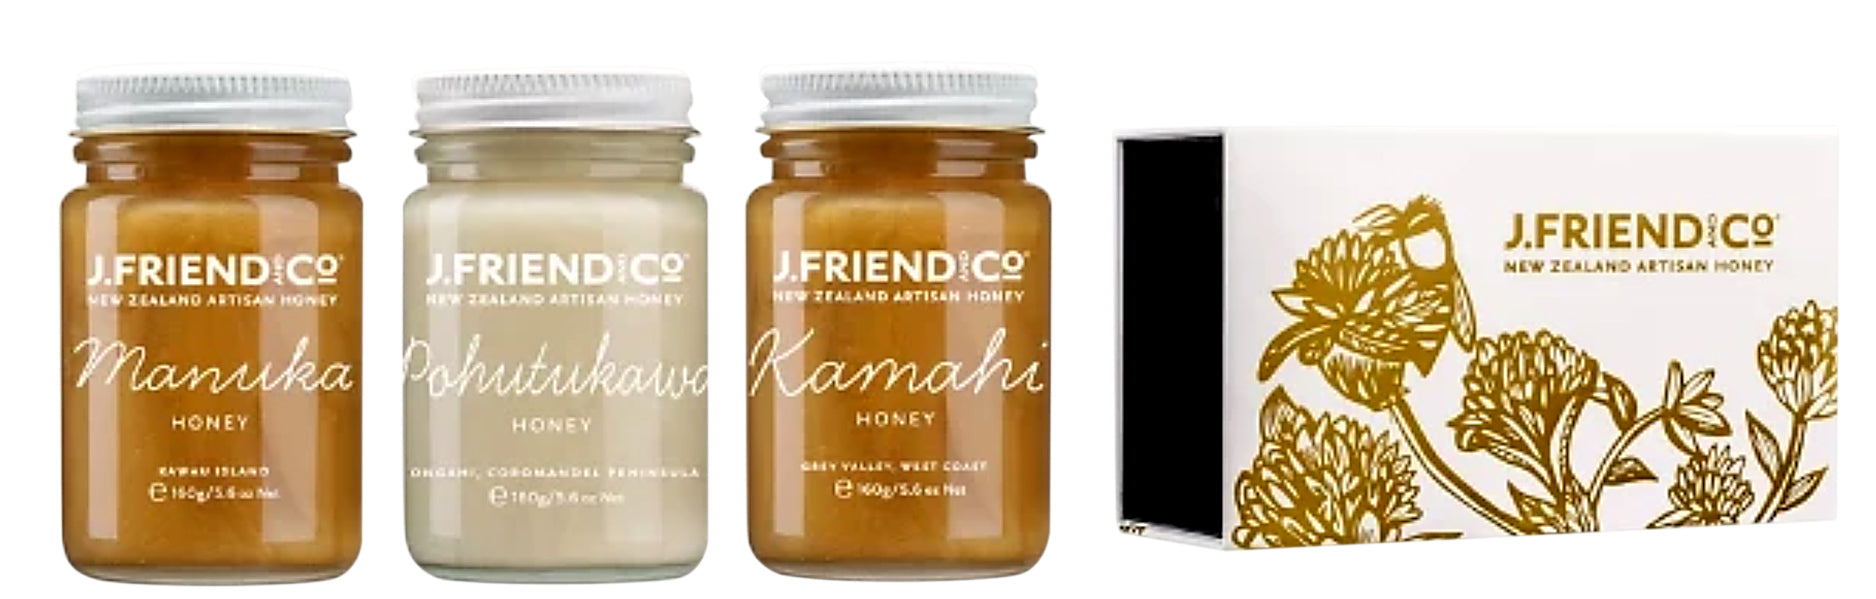 NZ Native Botanicals Collection Large - Manuka Honey | J Friend & Co